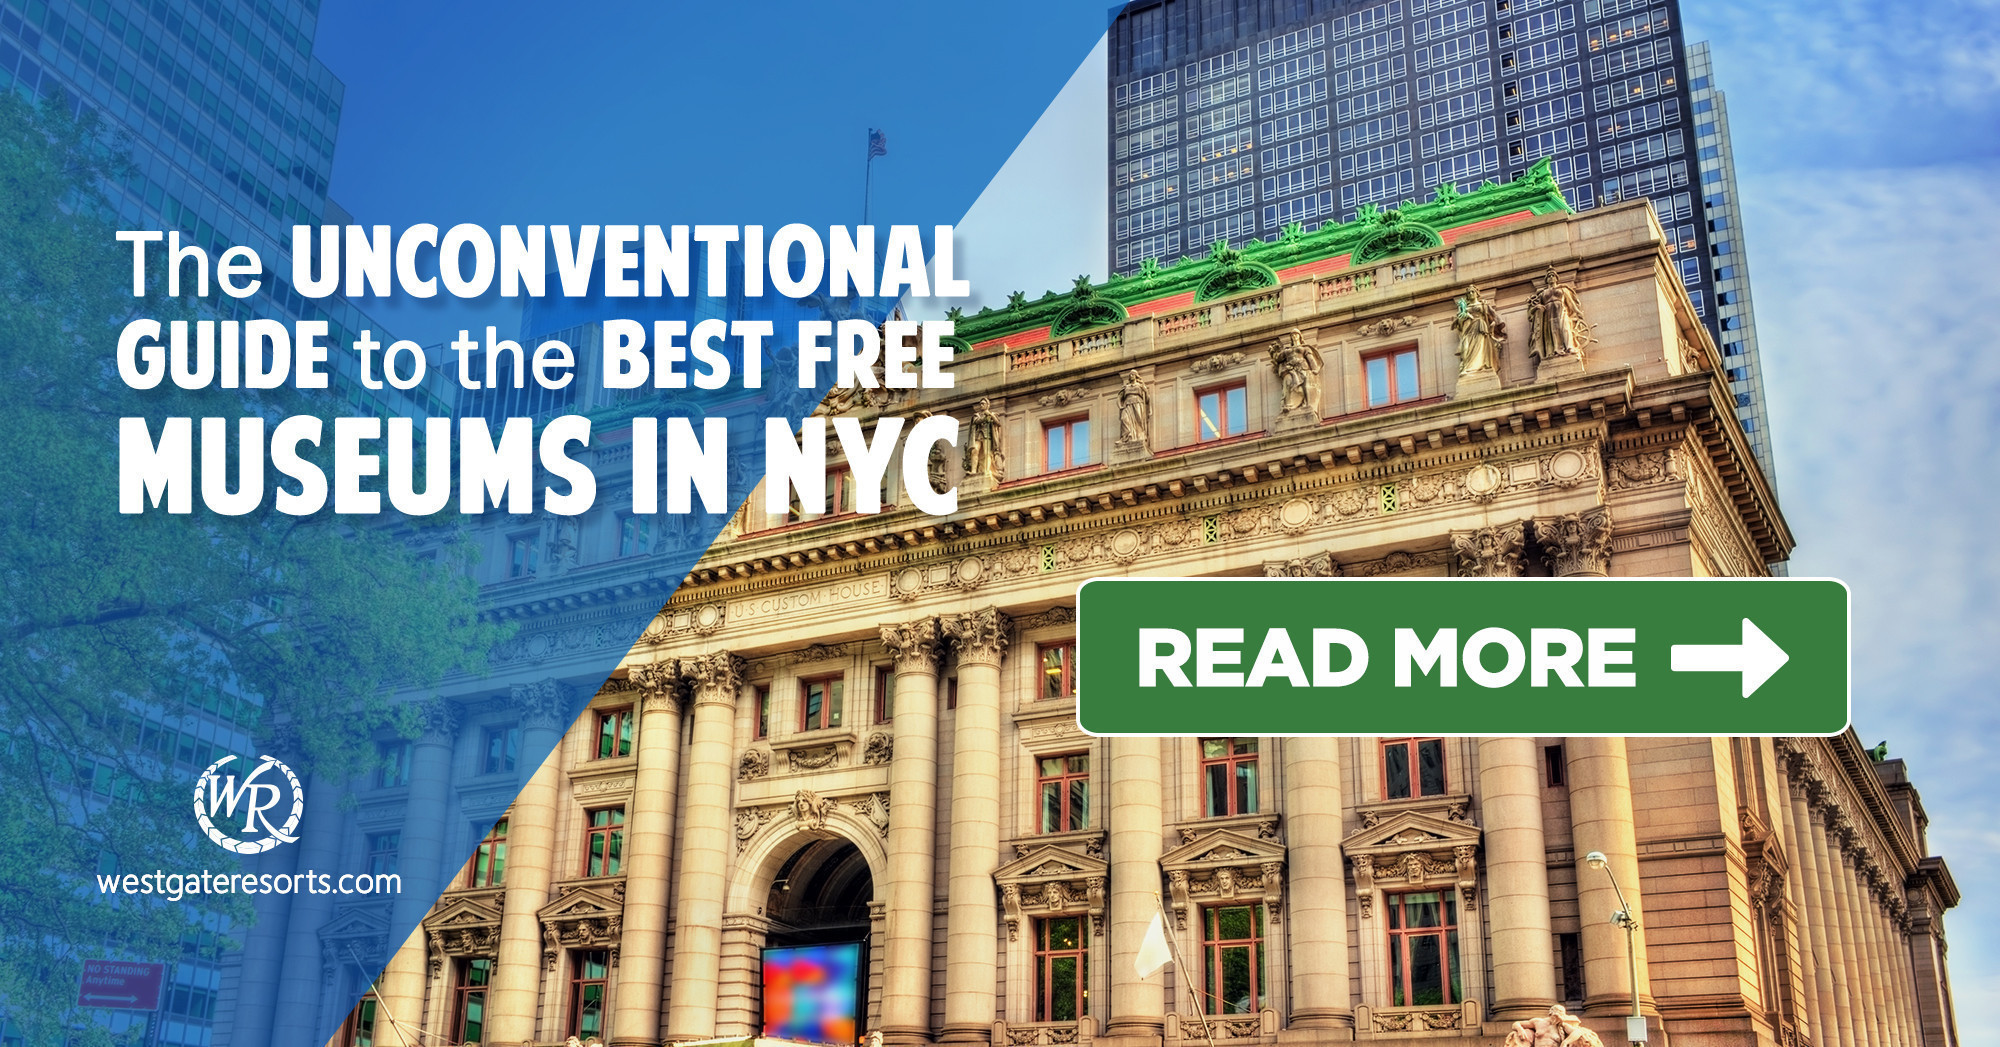 The Unconventional Guide to the Best Free Museums in NYC | New York City Museums Guide | Westgate NYC